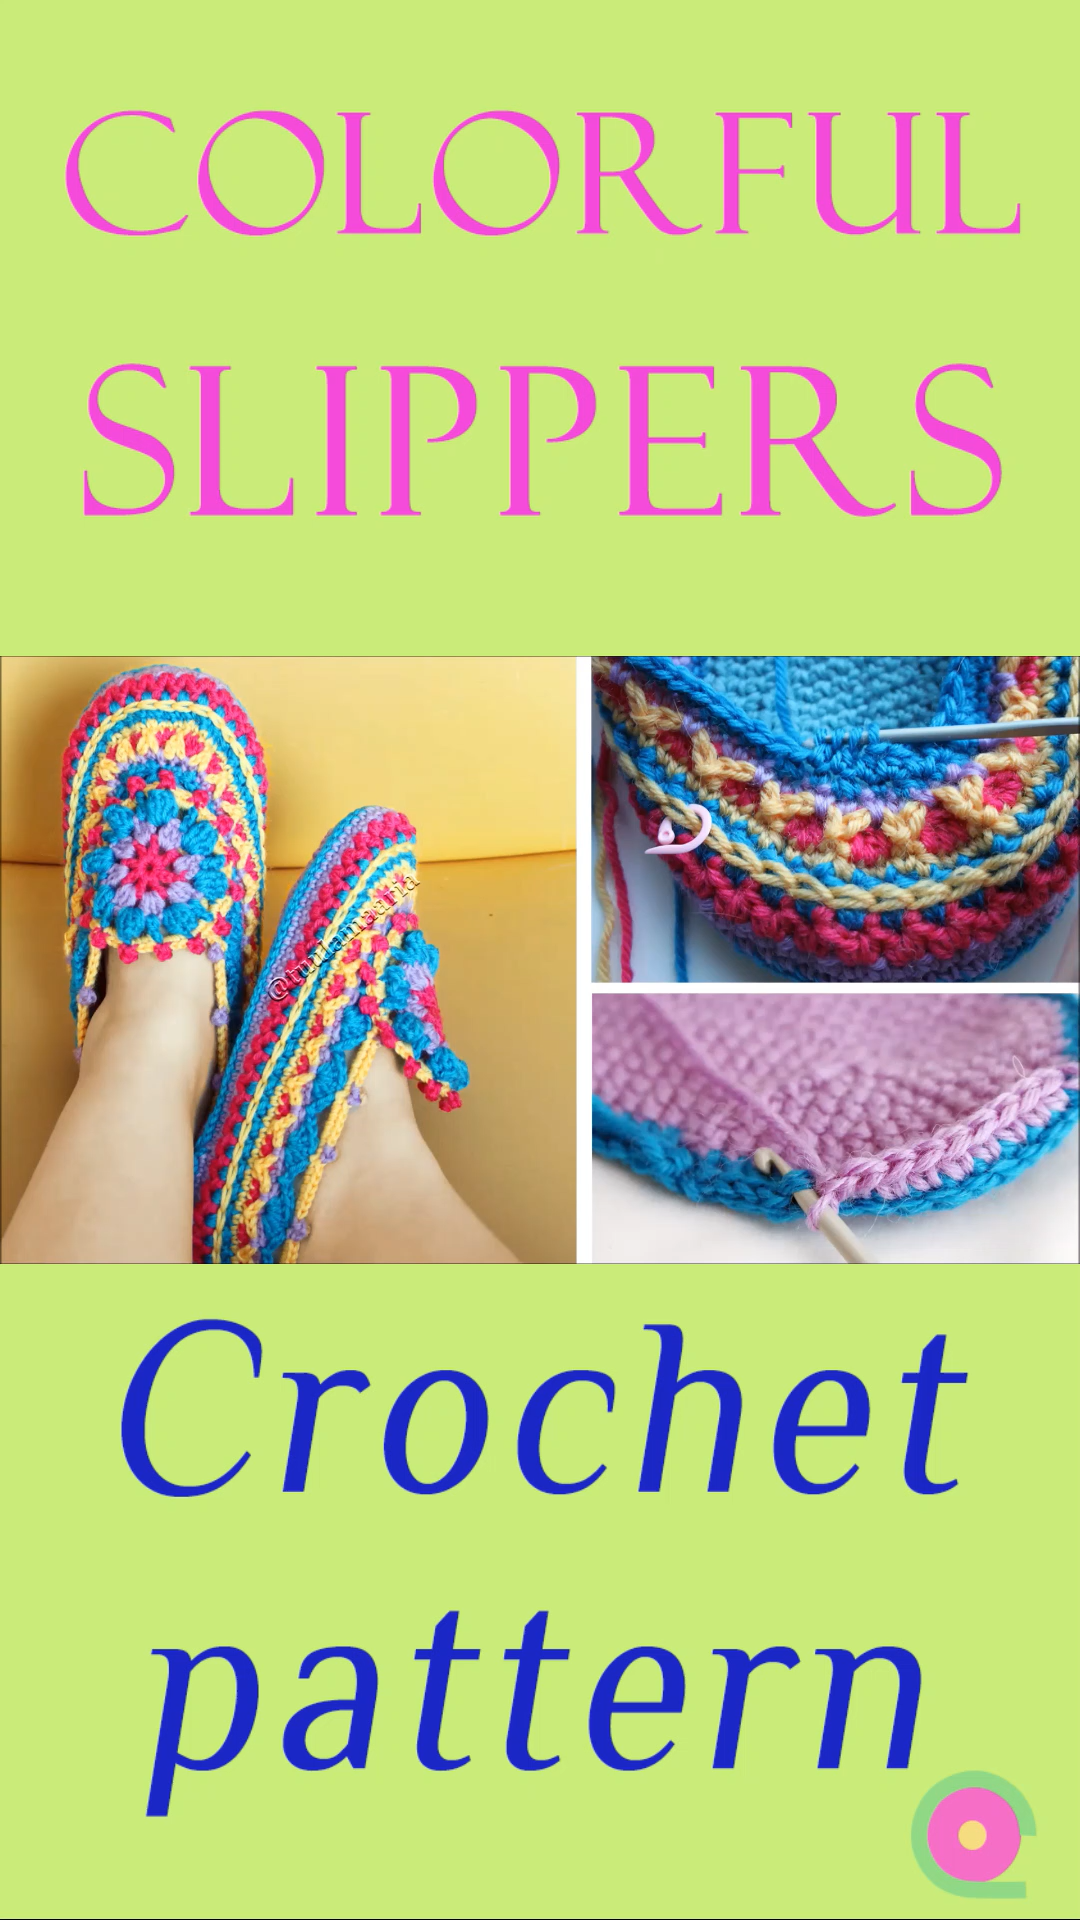 Photo of Colorful crochet slippers